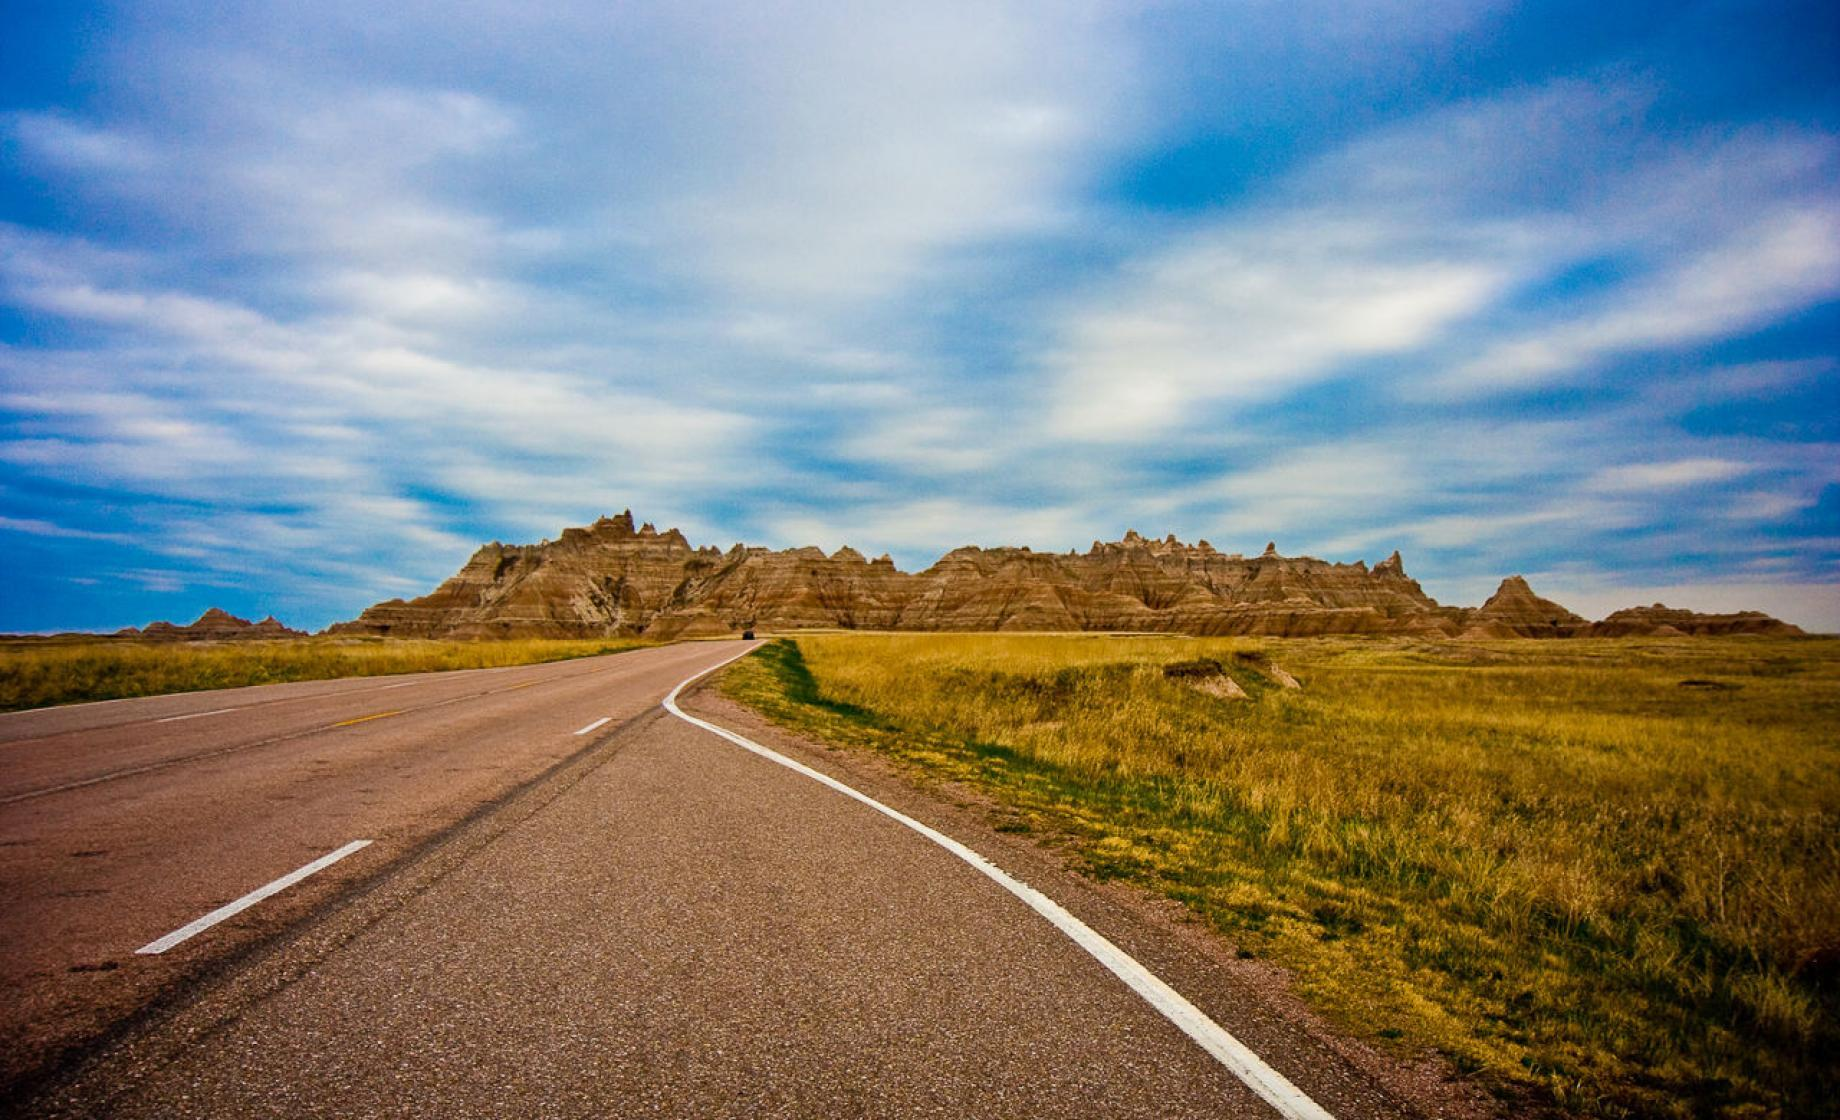 Badlands Roads